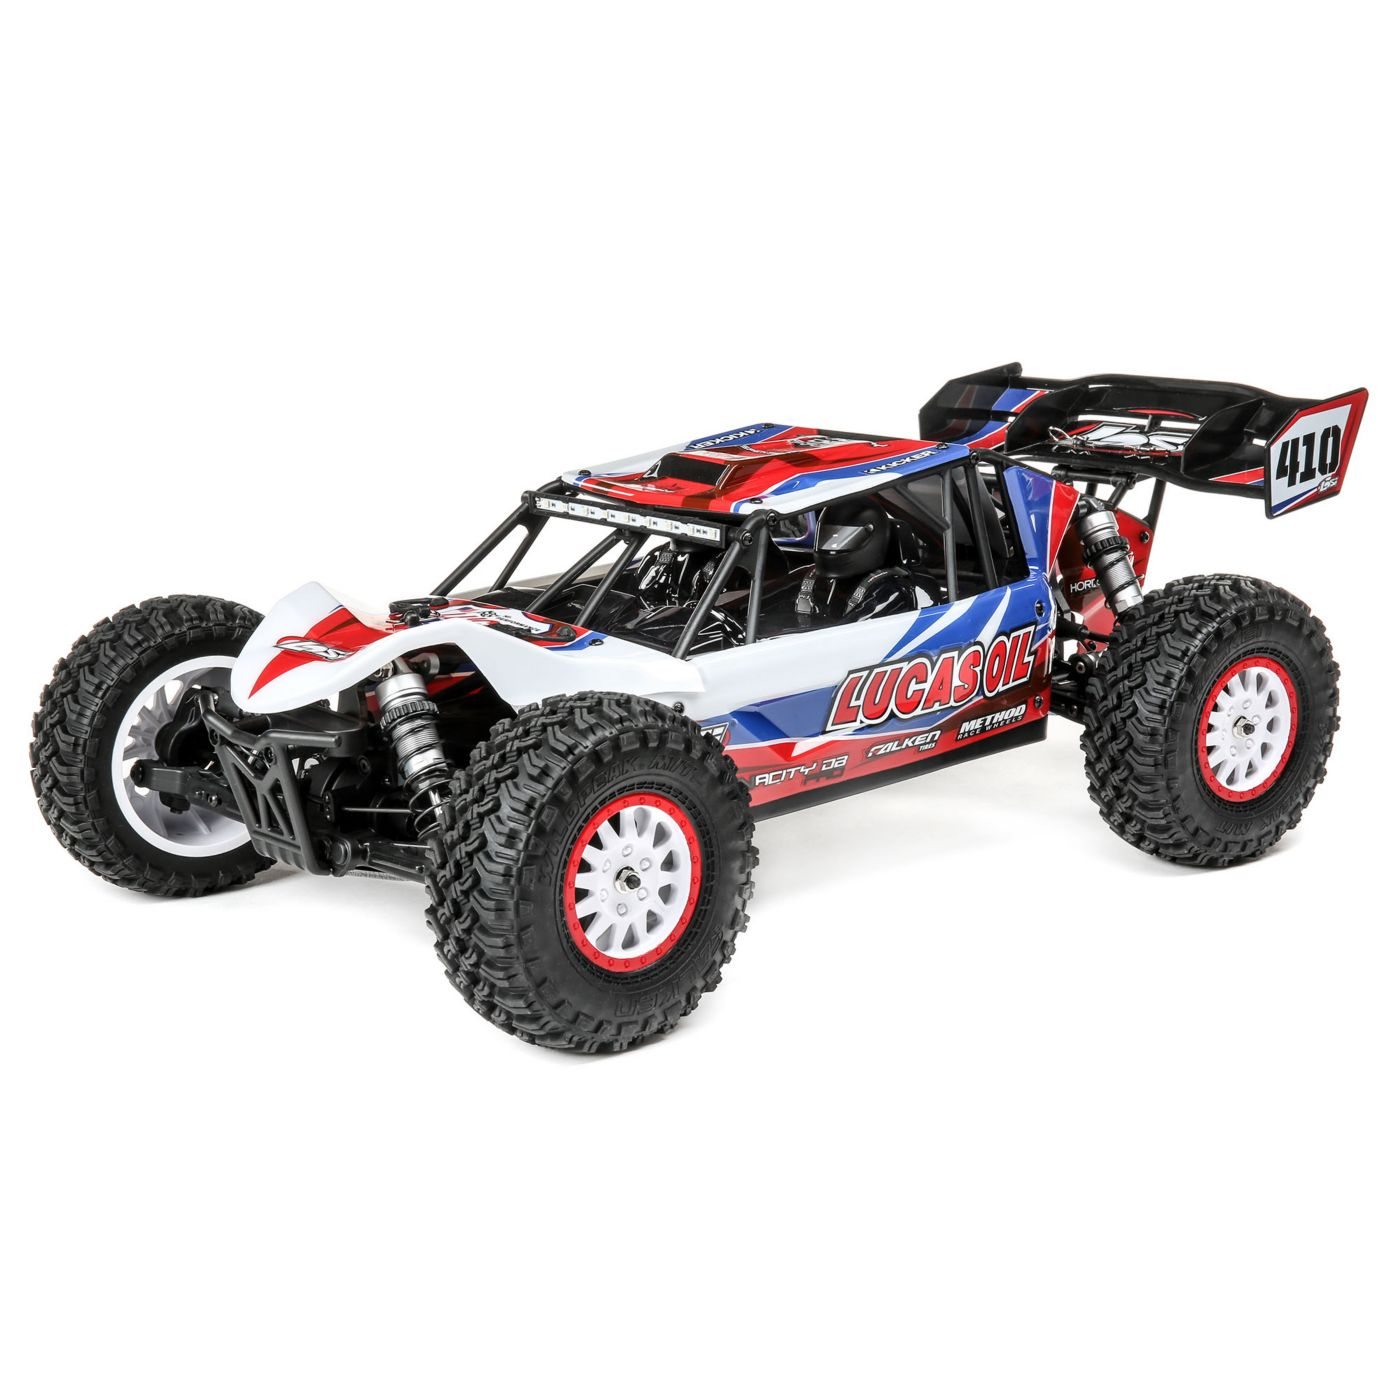 "Losi 1/10 Tenacity DB Pro 4WD Desert Buggy Brushless RTR with Smart, Lucas Oil - <font color=""red""><b>FREE BATTERY PROMO</b></font>"